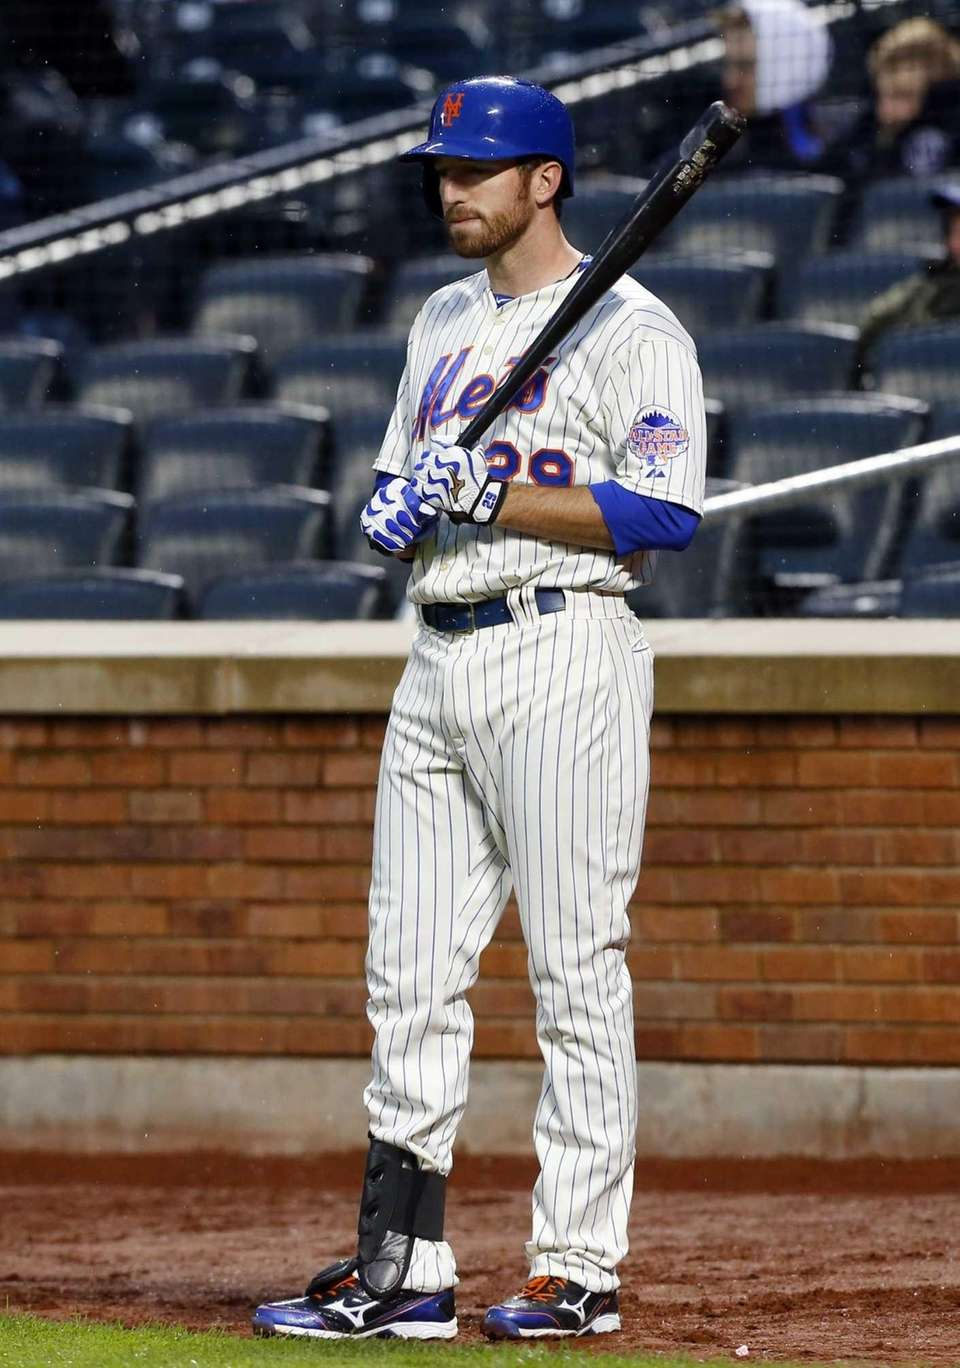 Ike Davis of the Mets waits on deck